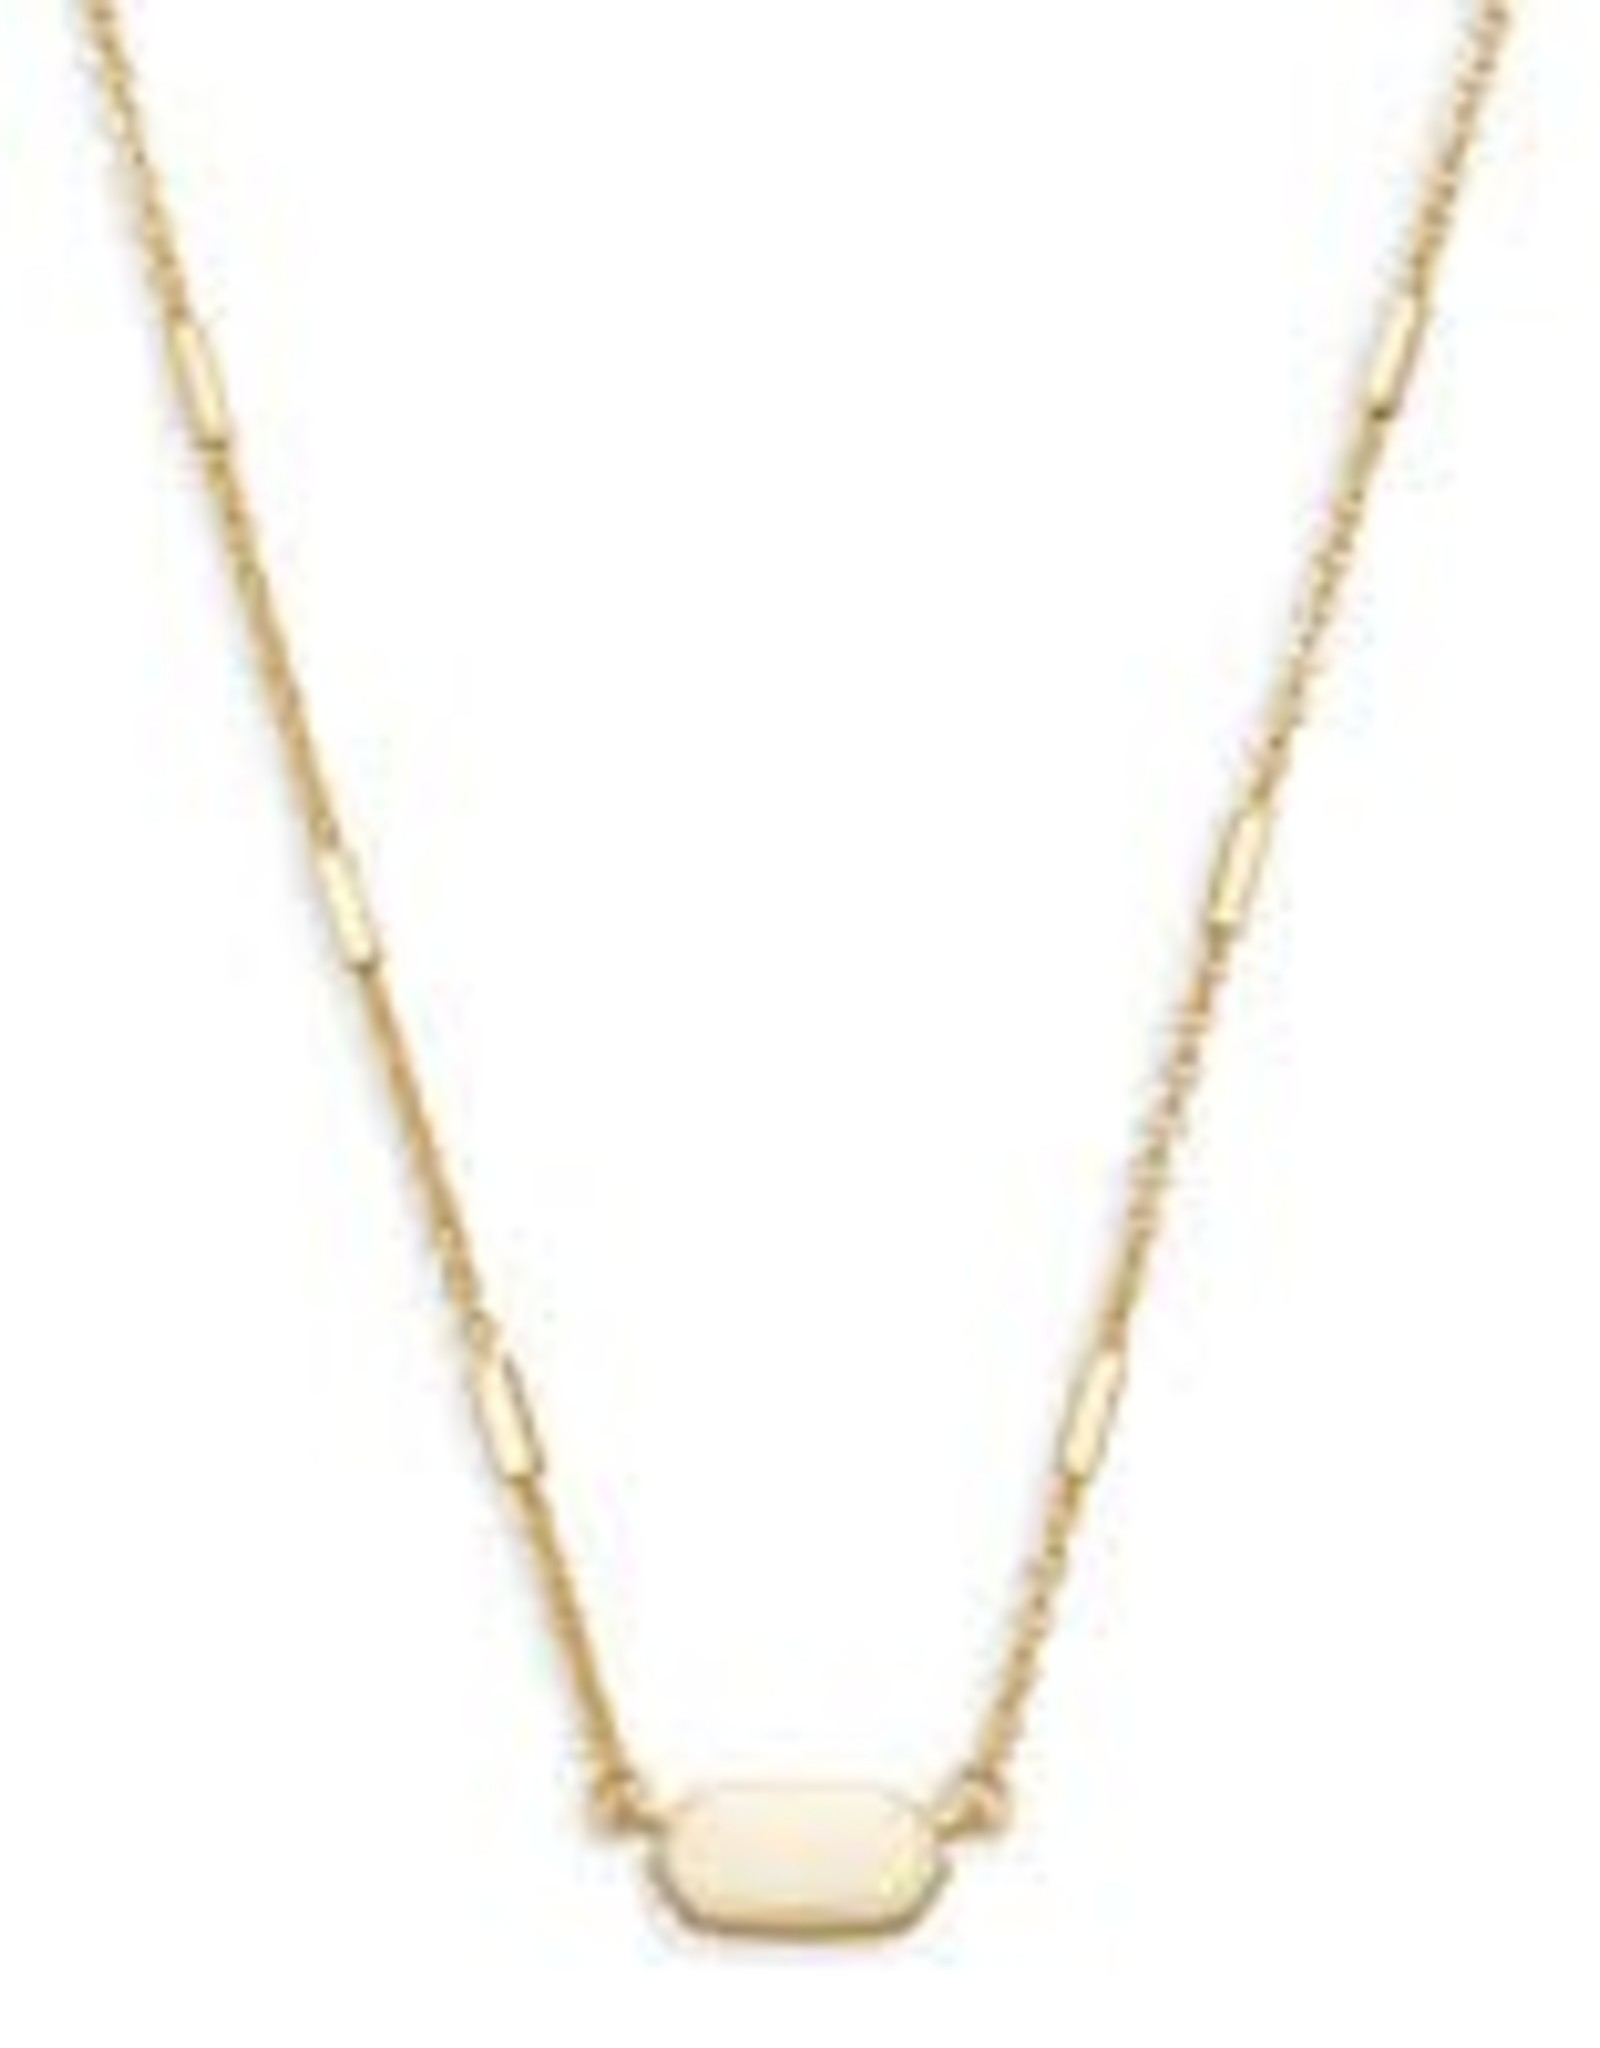 Kendra Scott KENDRA SCOTT Necklace Fern- Gold